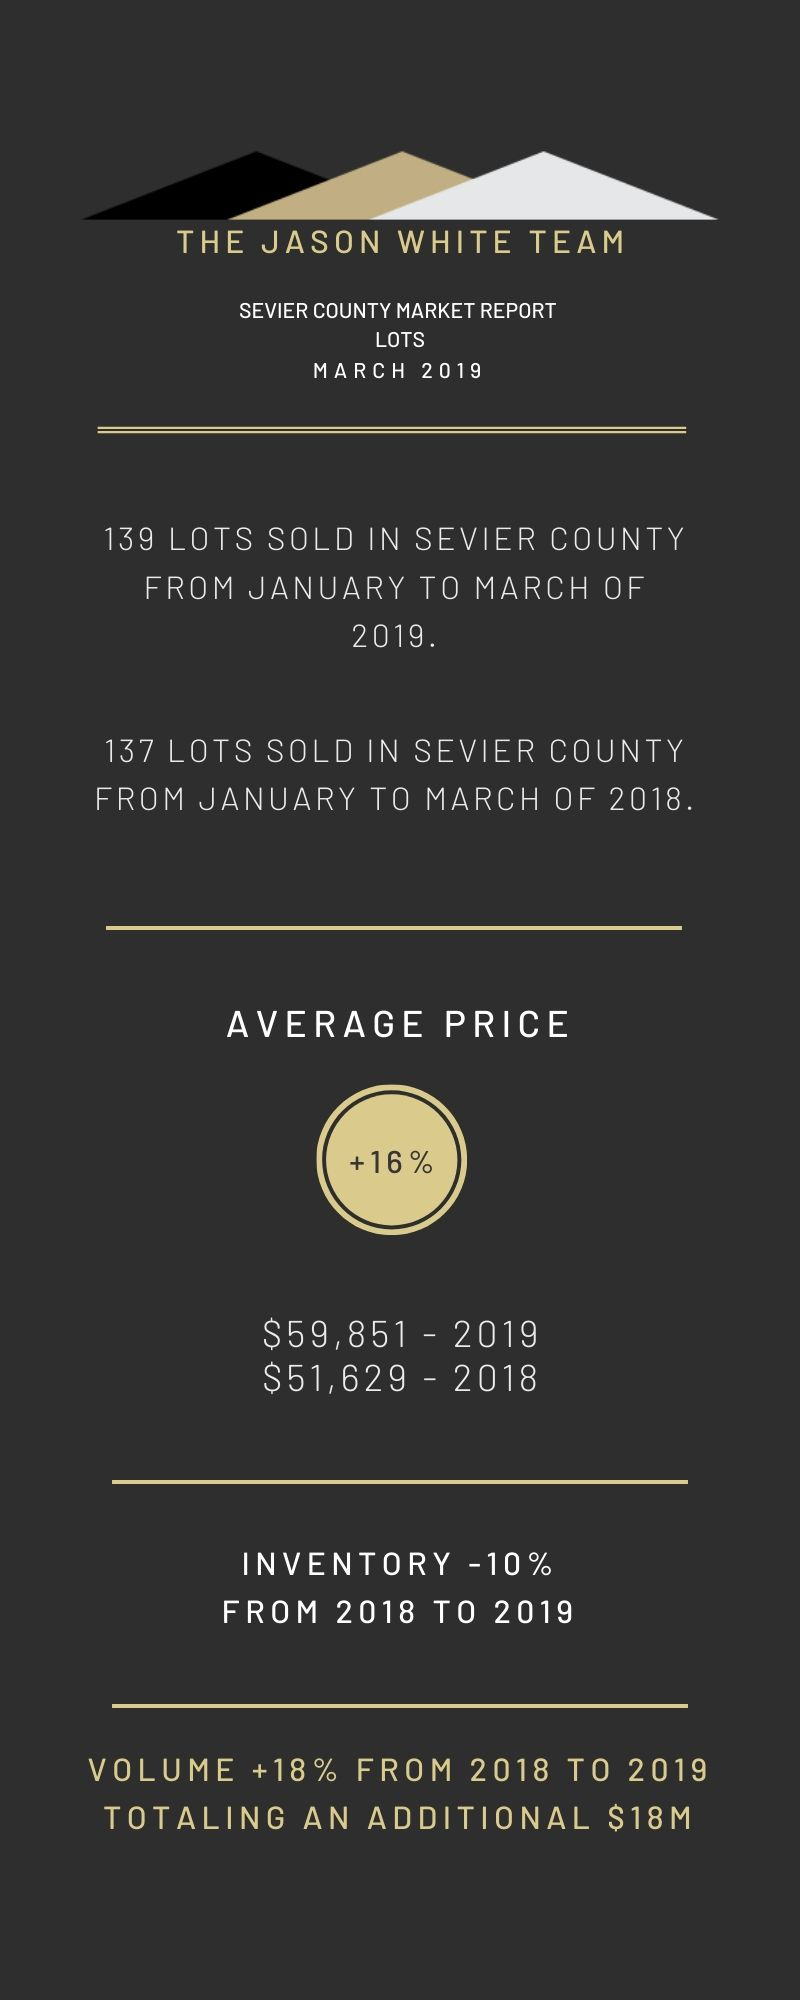 March 2019 - Land Real Estate Market Statistics for Sevier County, TN